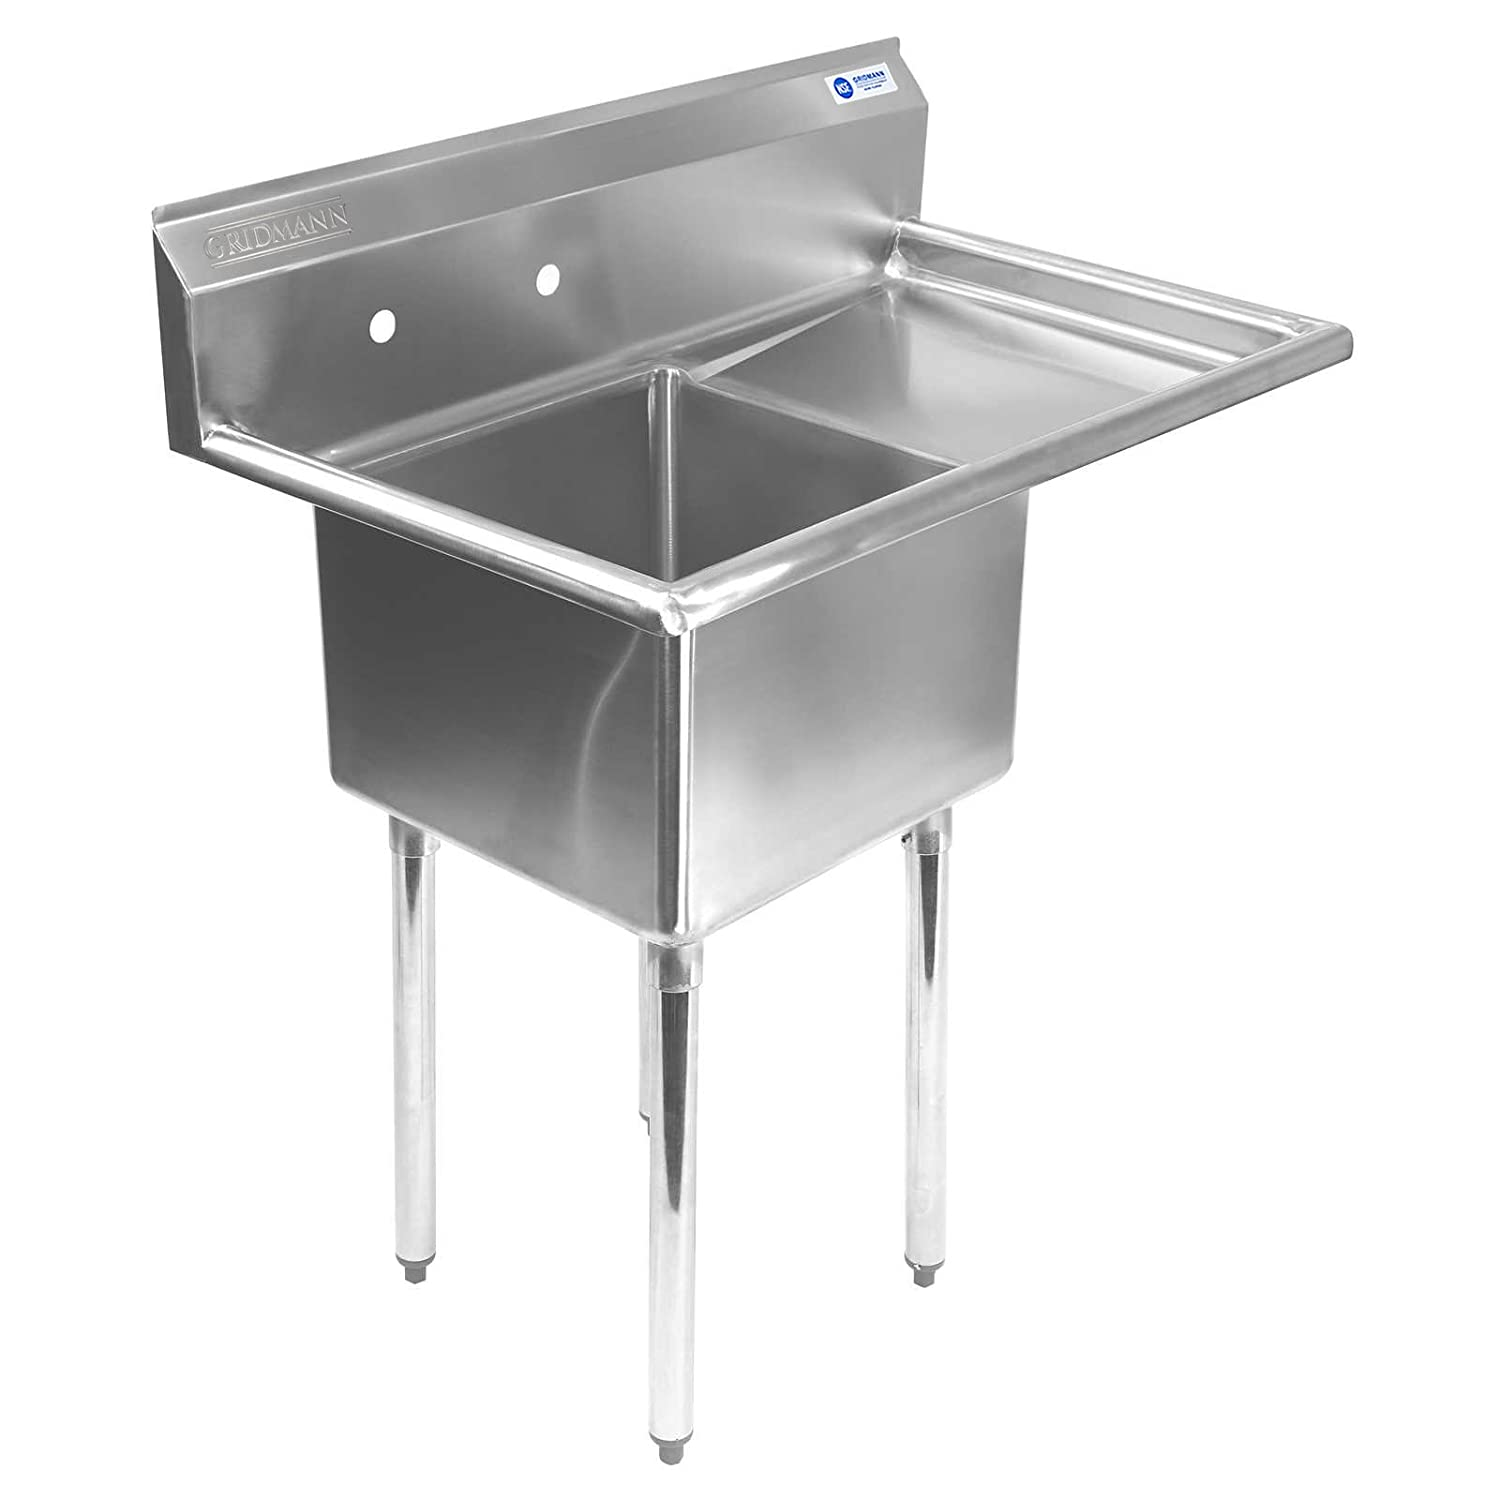 Commercial sink stainless steel 120 cm single bowl - Gridmann 1 Compartment Nsf Stainless Steel Commercial Kitchen Prep Utility Sink W Drainboard 39 In Wide